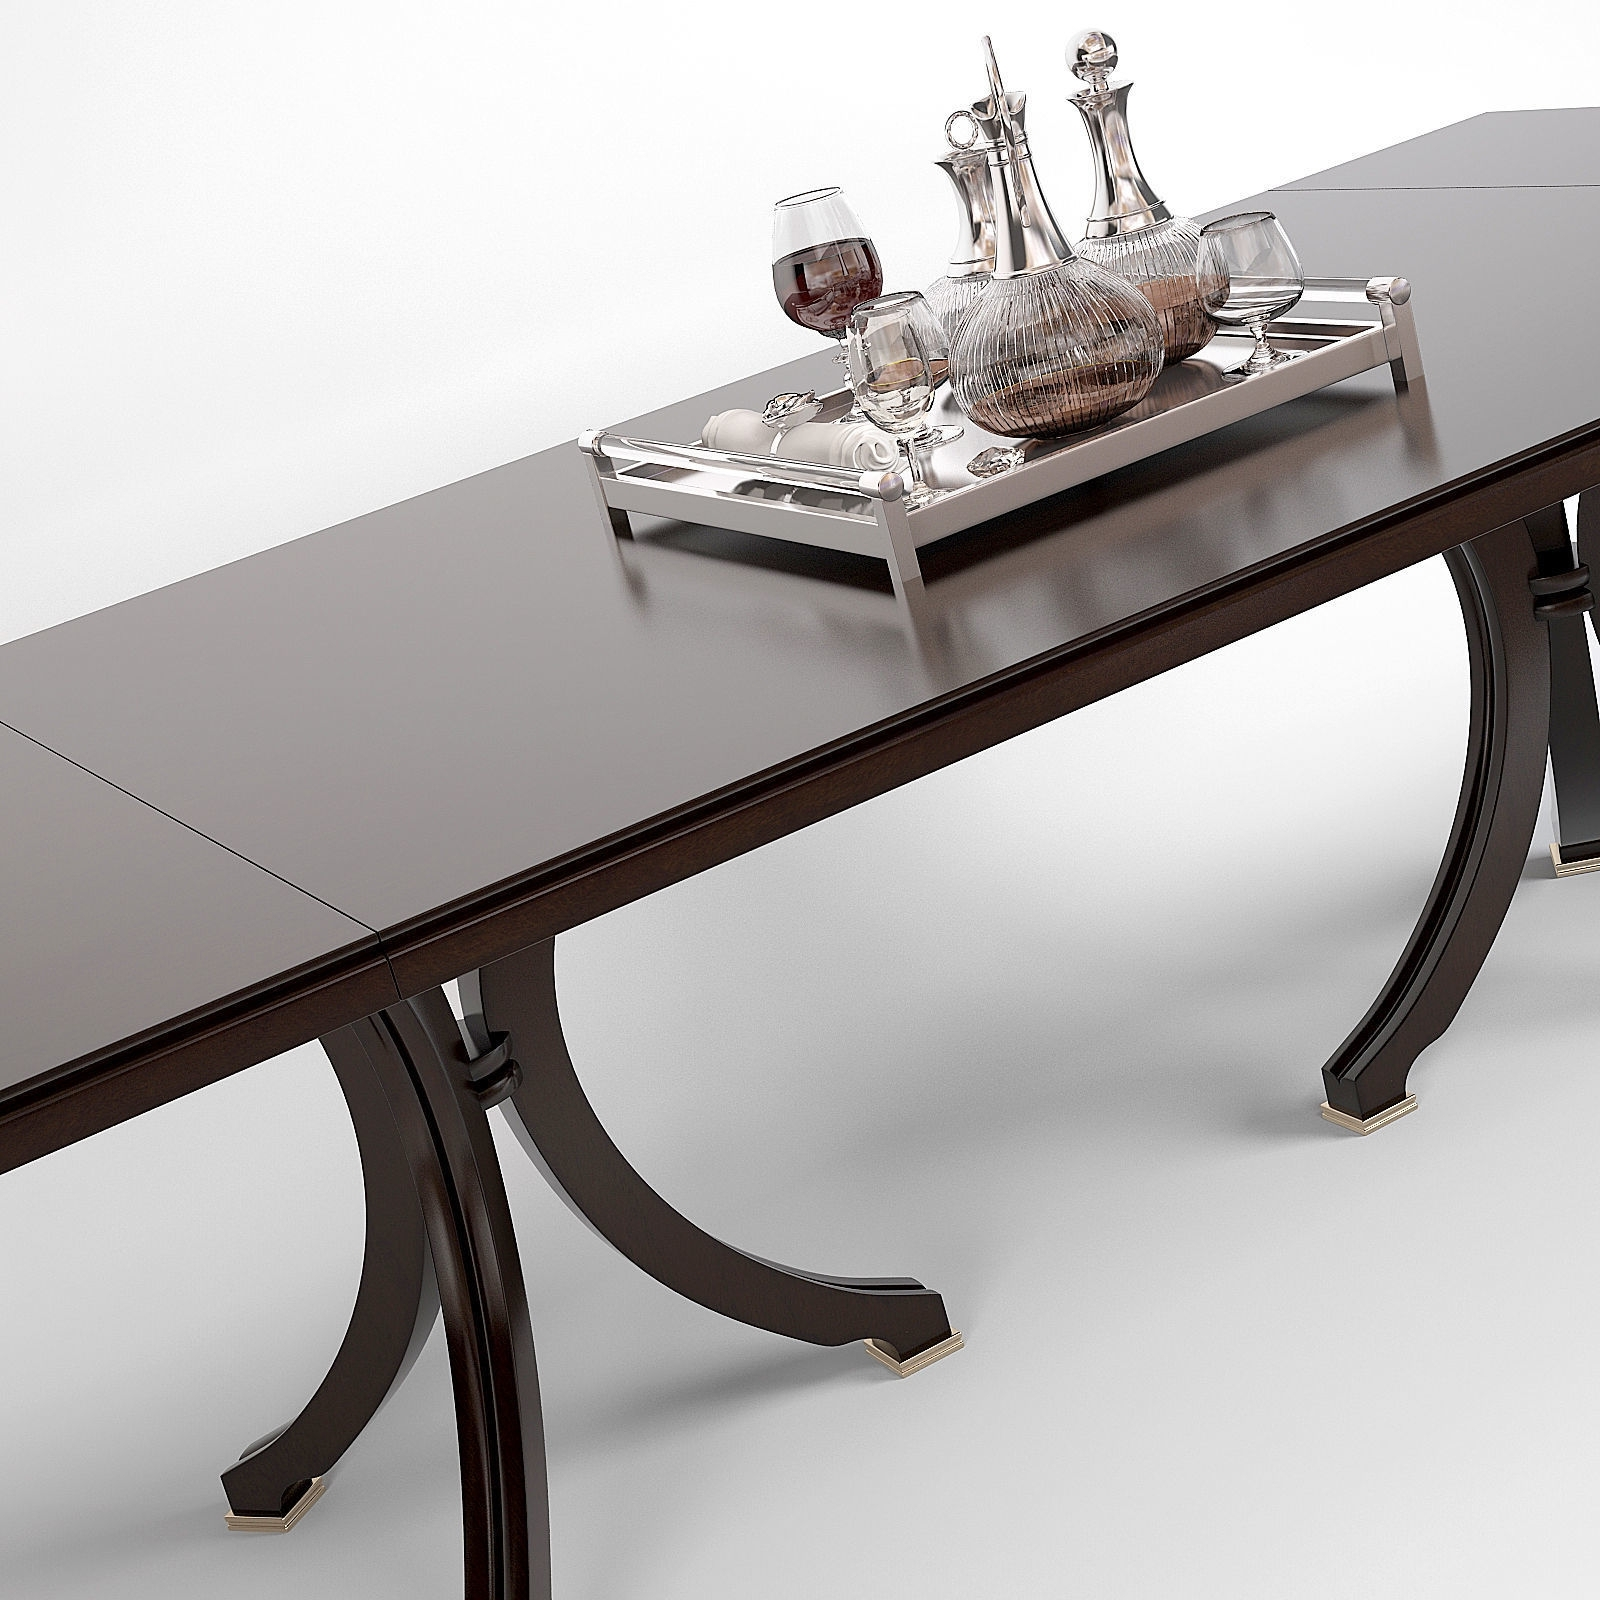 Cgtrader Throughout Vienna Dining Tables (View 3 of 25)